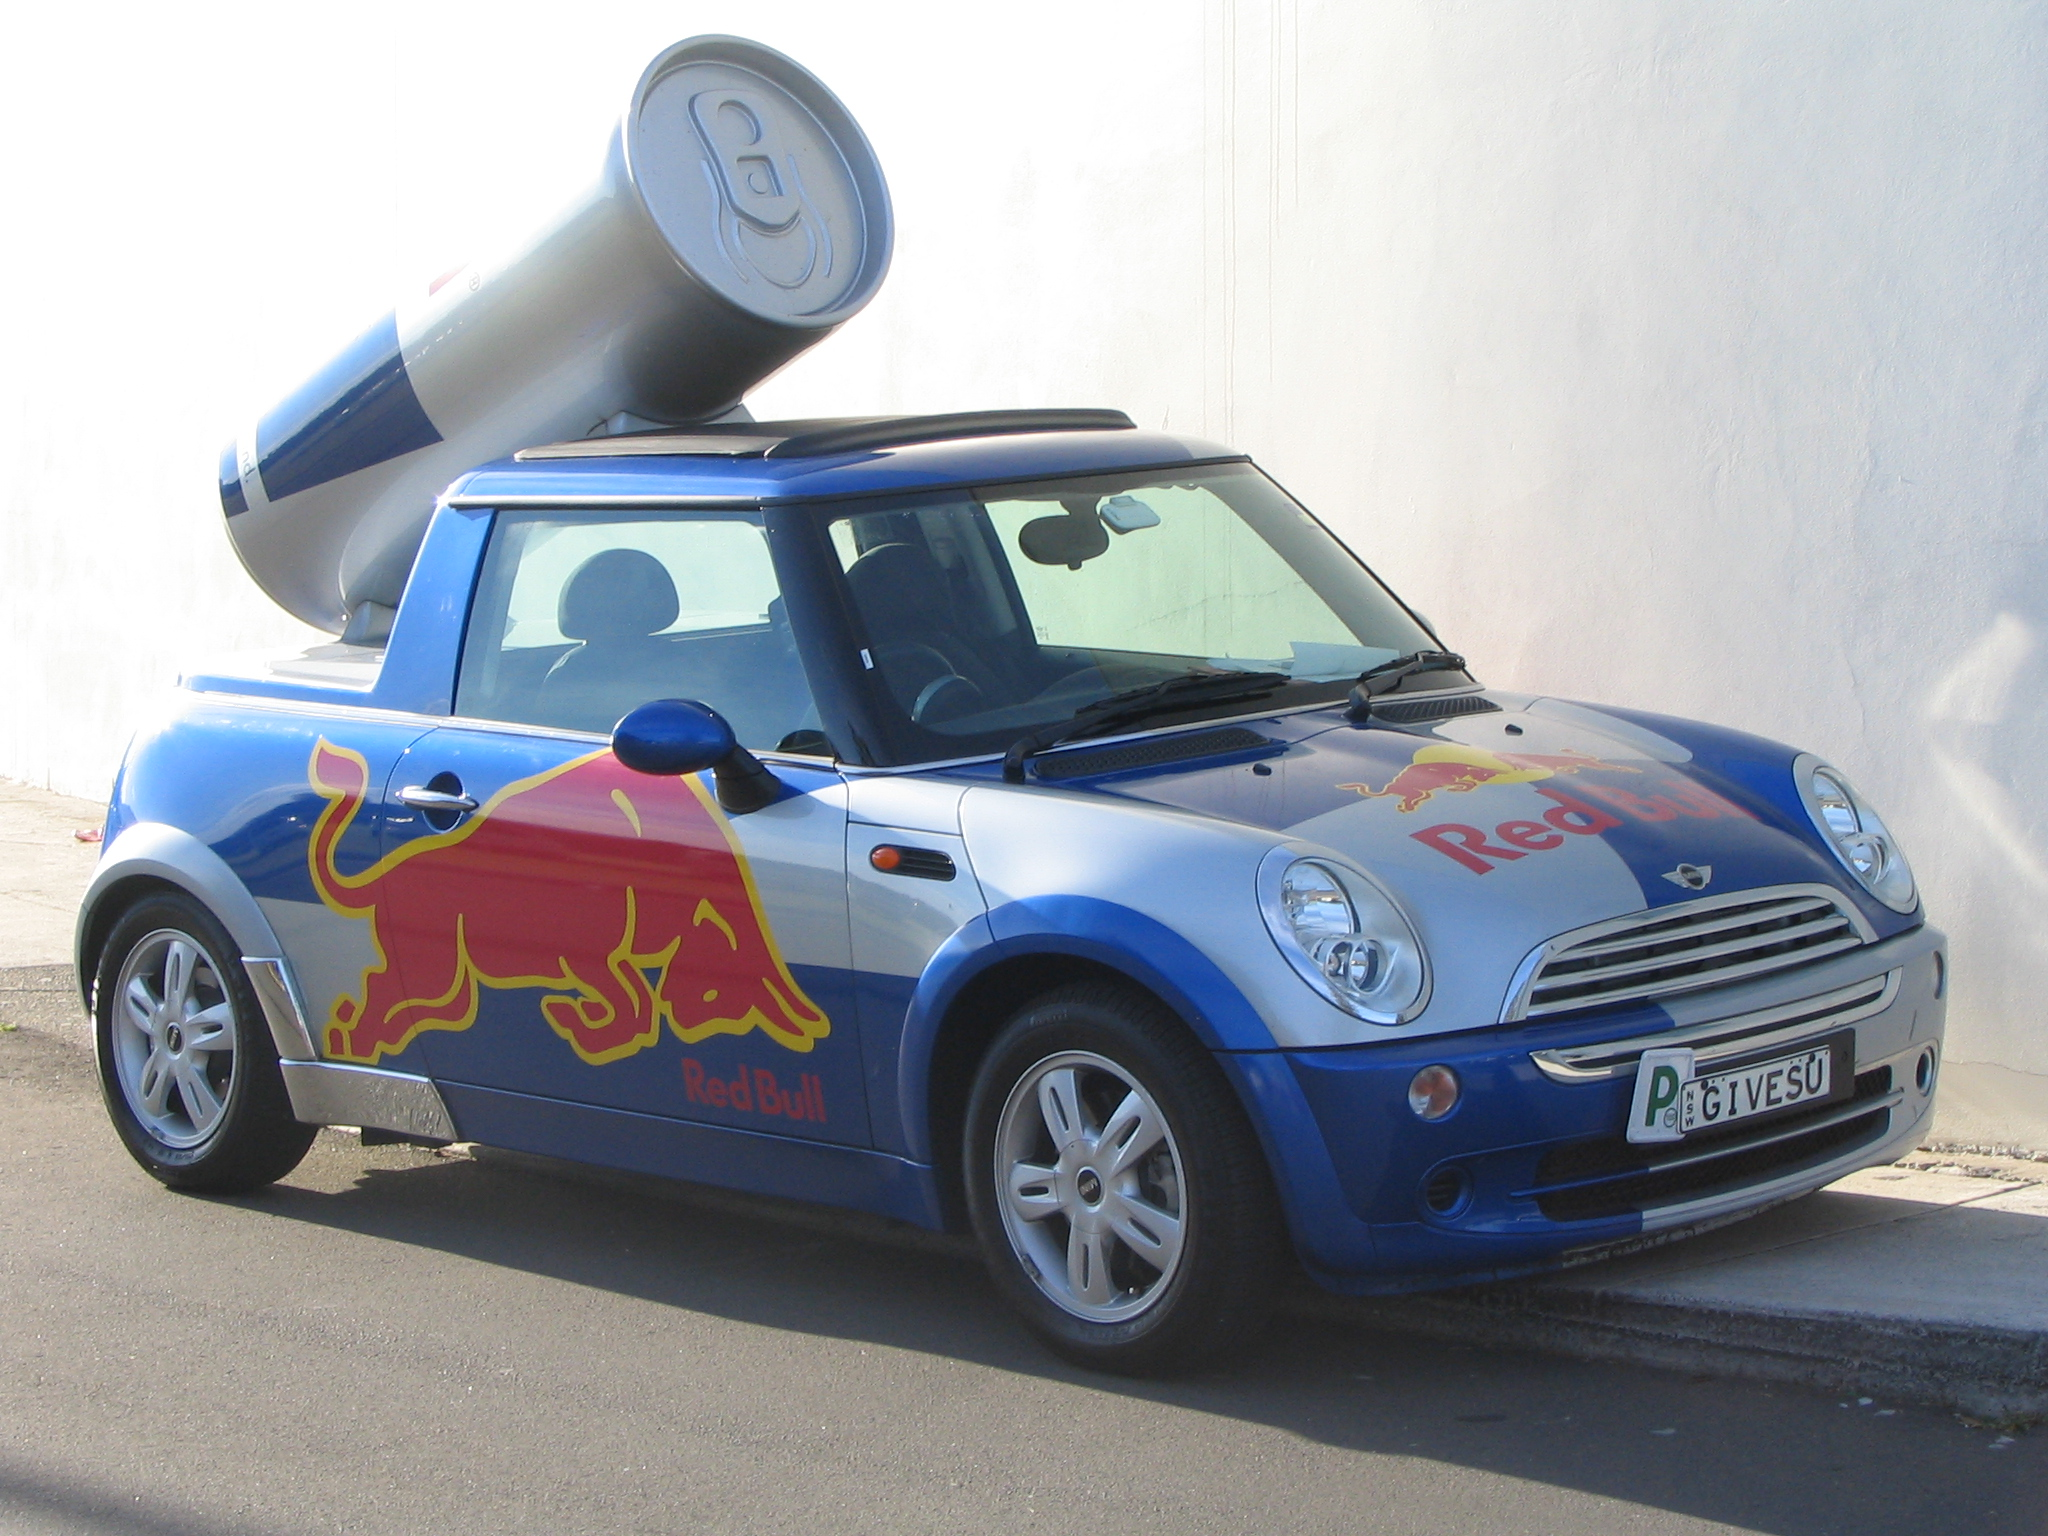 red bull marketing essay Read red bull -- research/marketing strategy free essay and over 88,000 other research documents red bull -- research/marketing strategy company overview red bull, founded in 1984 by deitrich mateschitz and chaleo yoovidhya, is headquartered in austria in 2006, red.